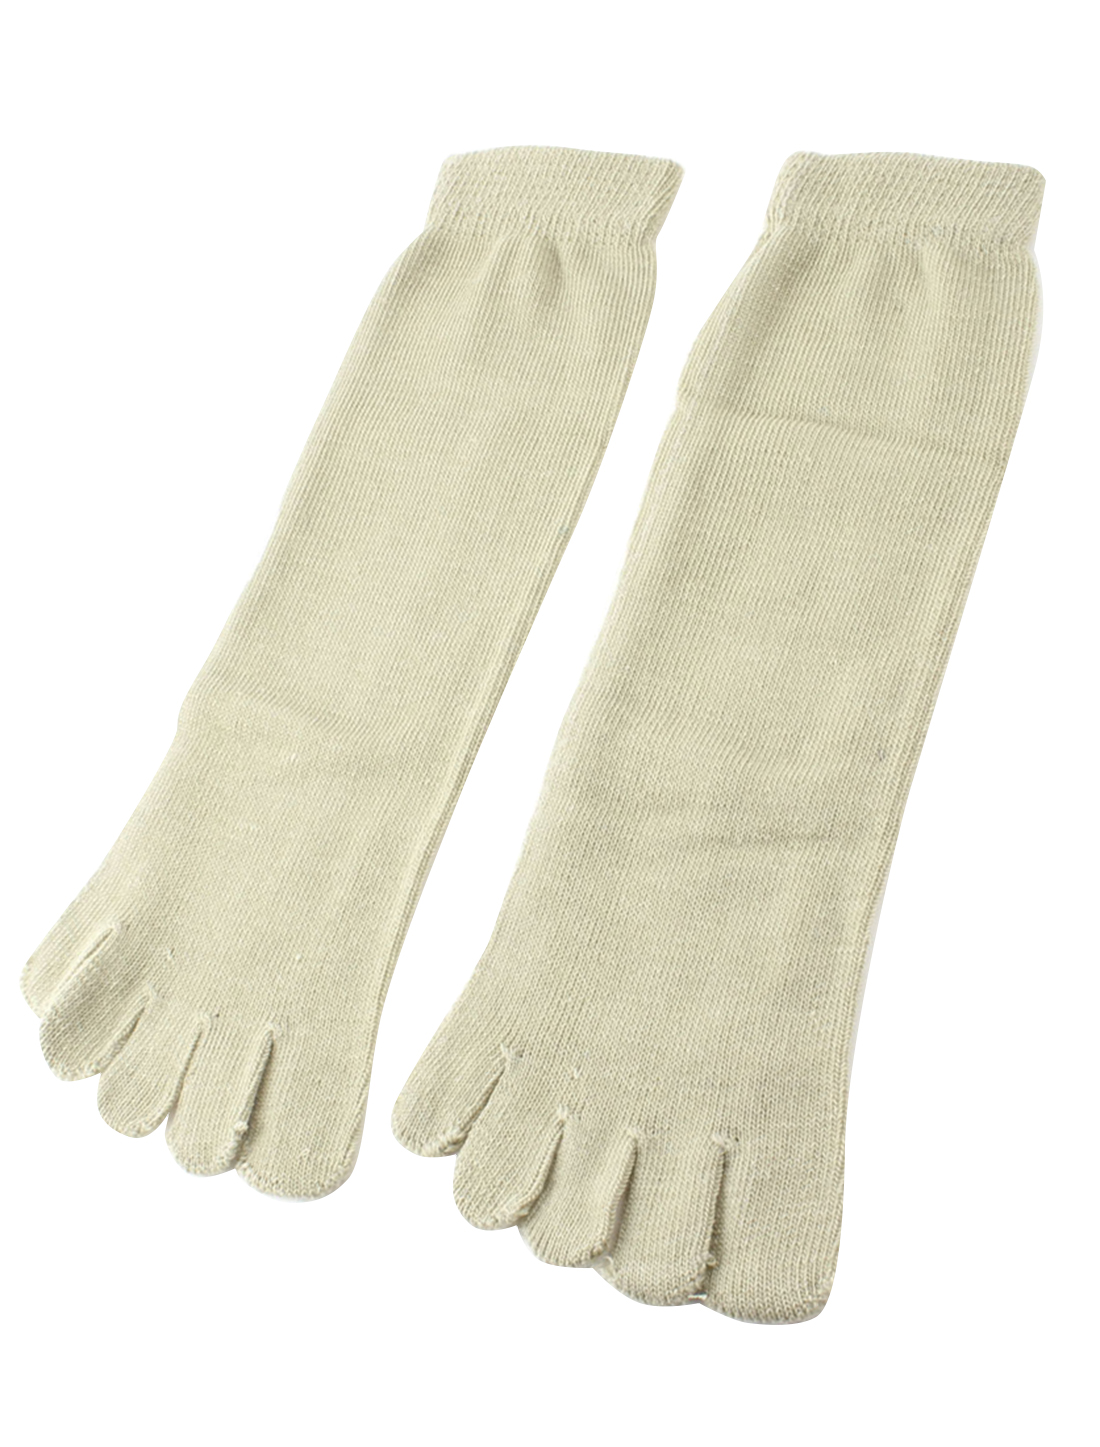 Unisex Autumn Ankle High Length Elastic Five Fingers Feet Toe Socks Khaki Pair